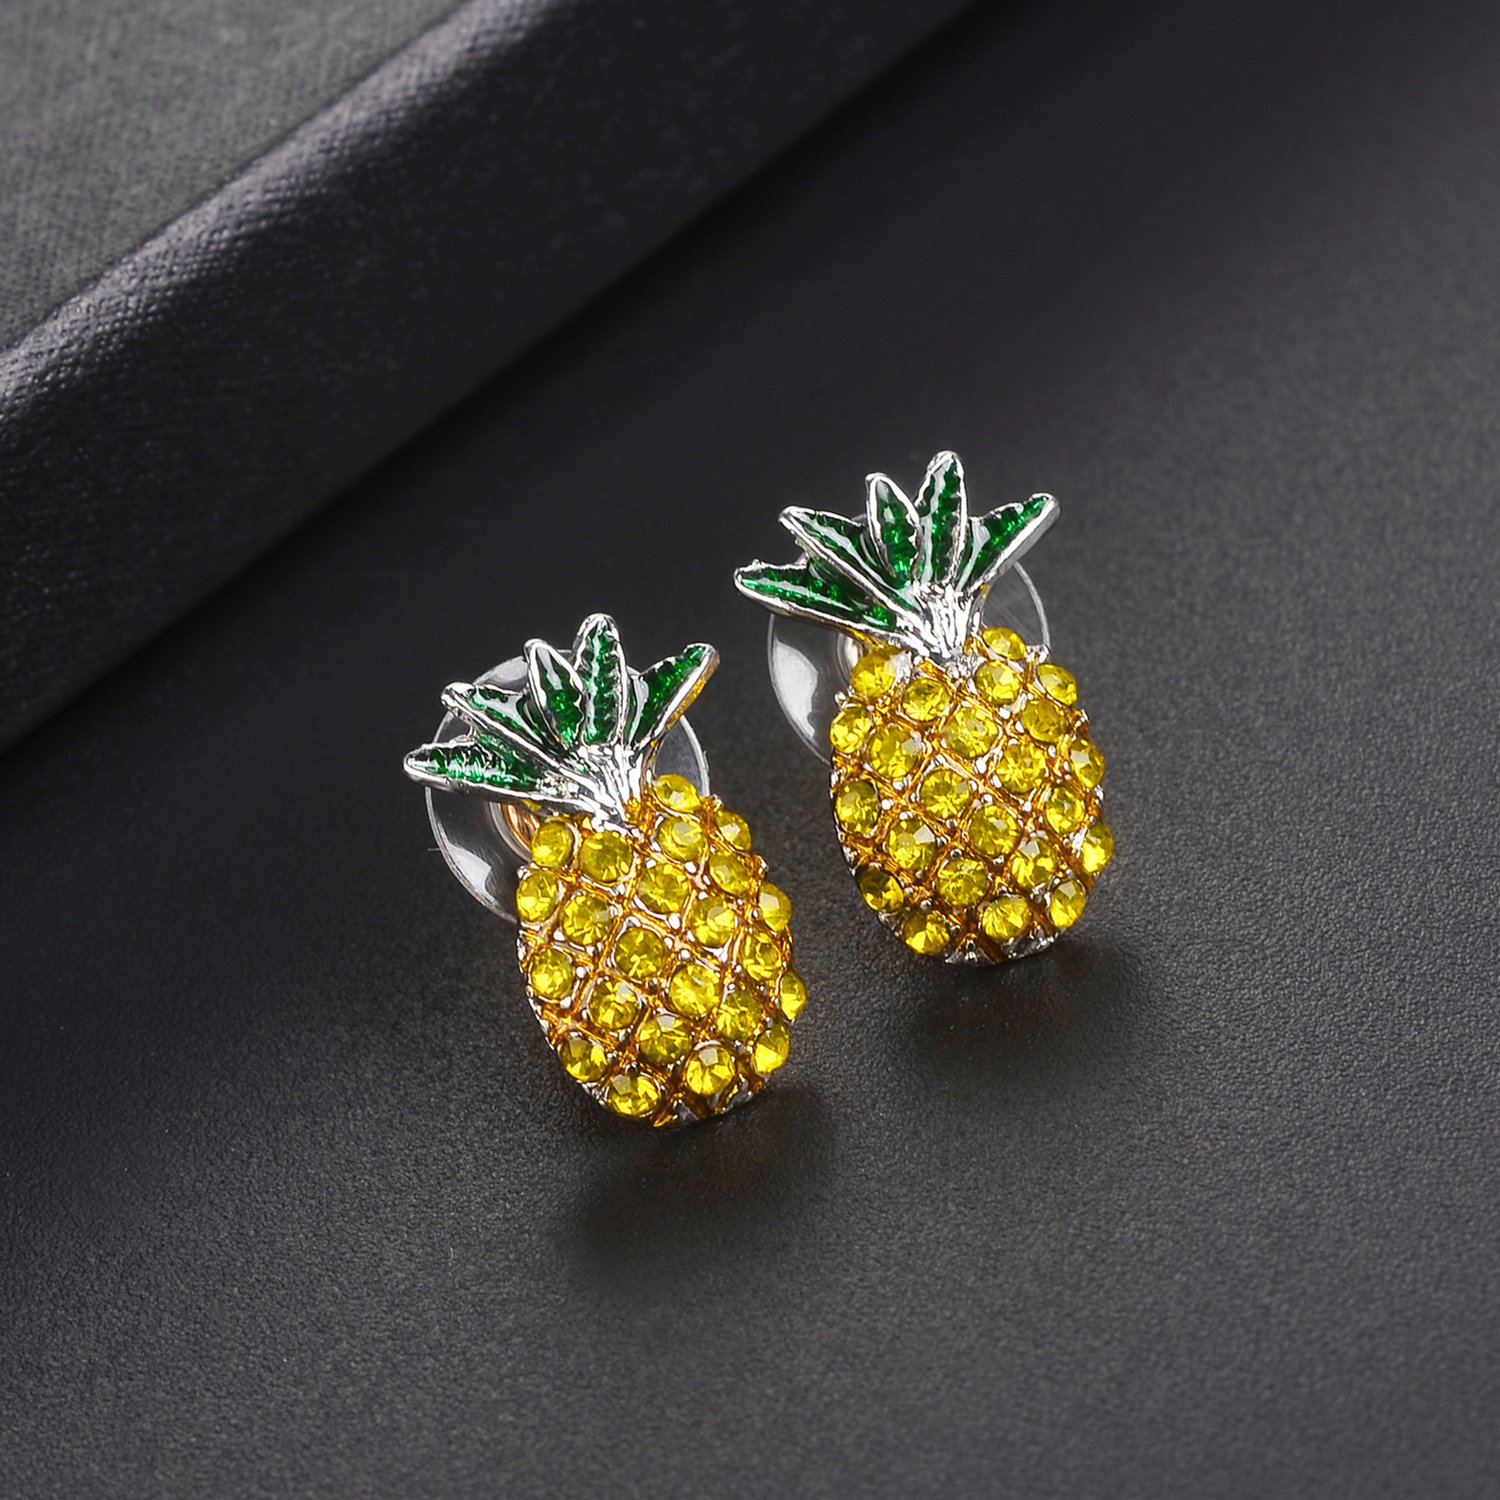 Fruit Cocktail Pave Pineapple Stud Earrings